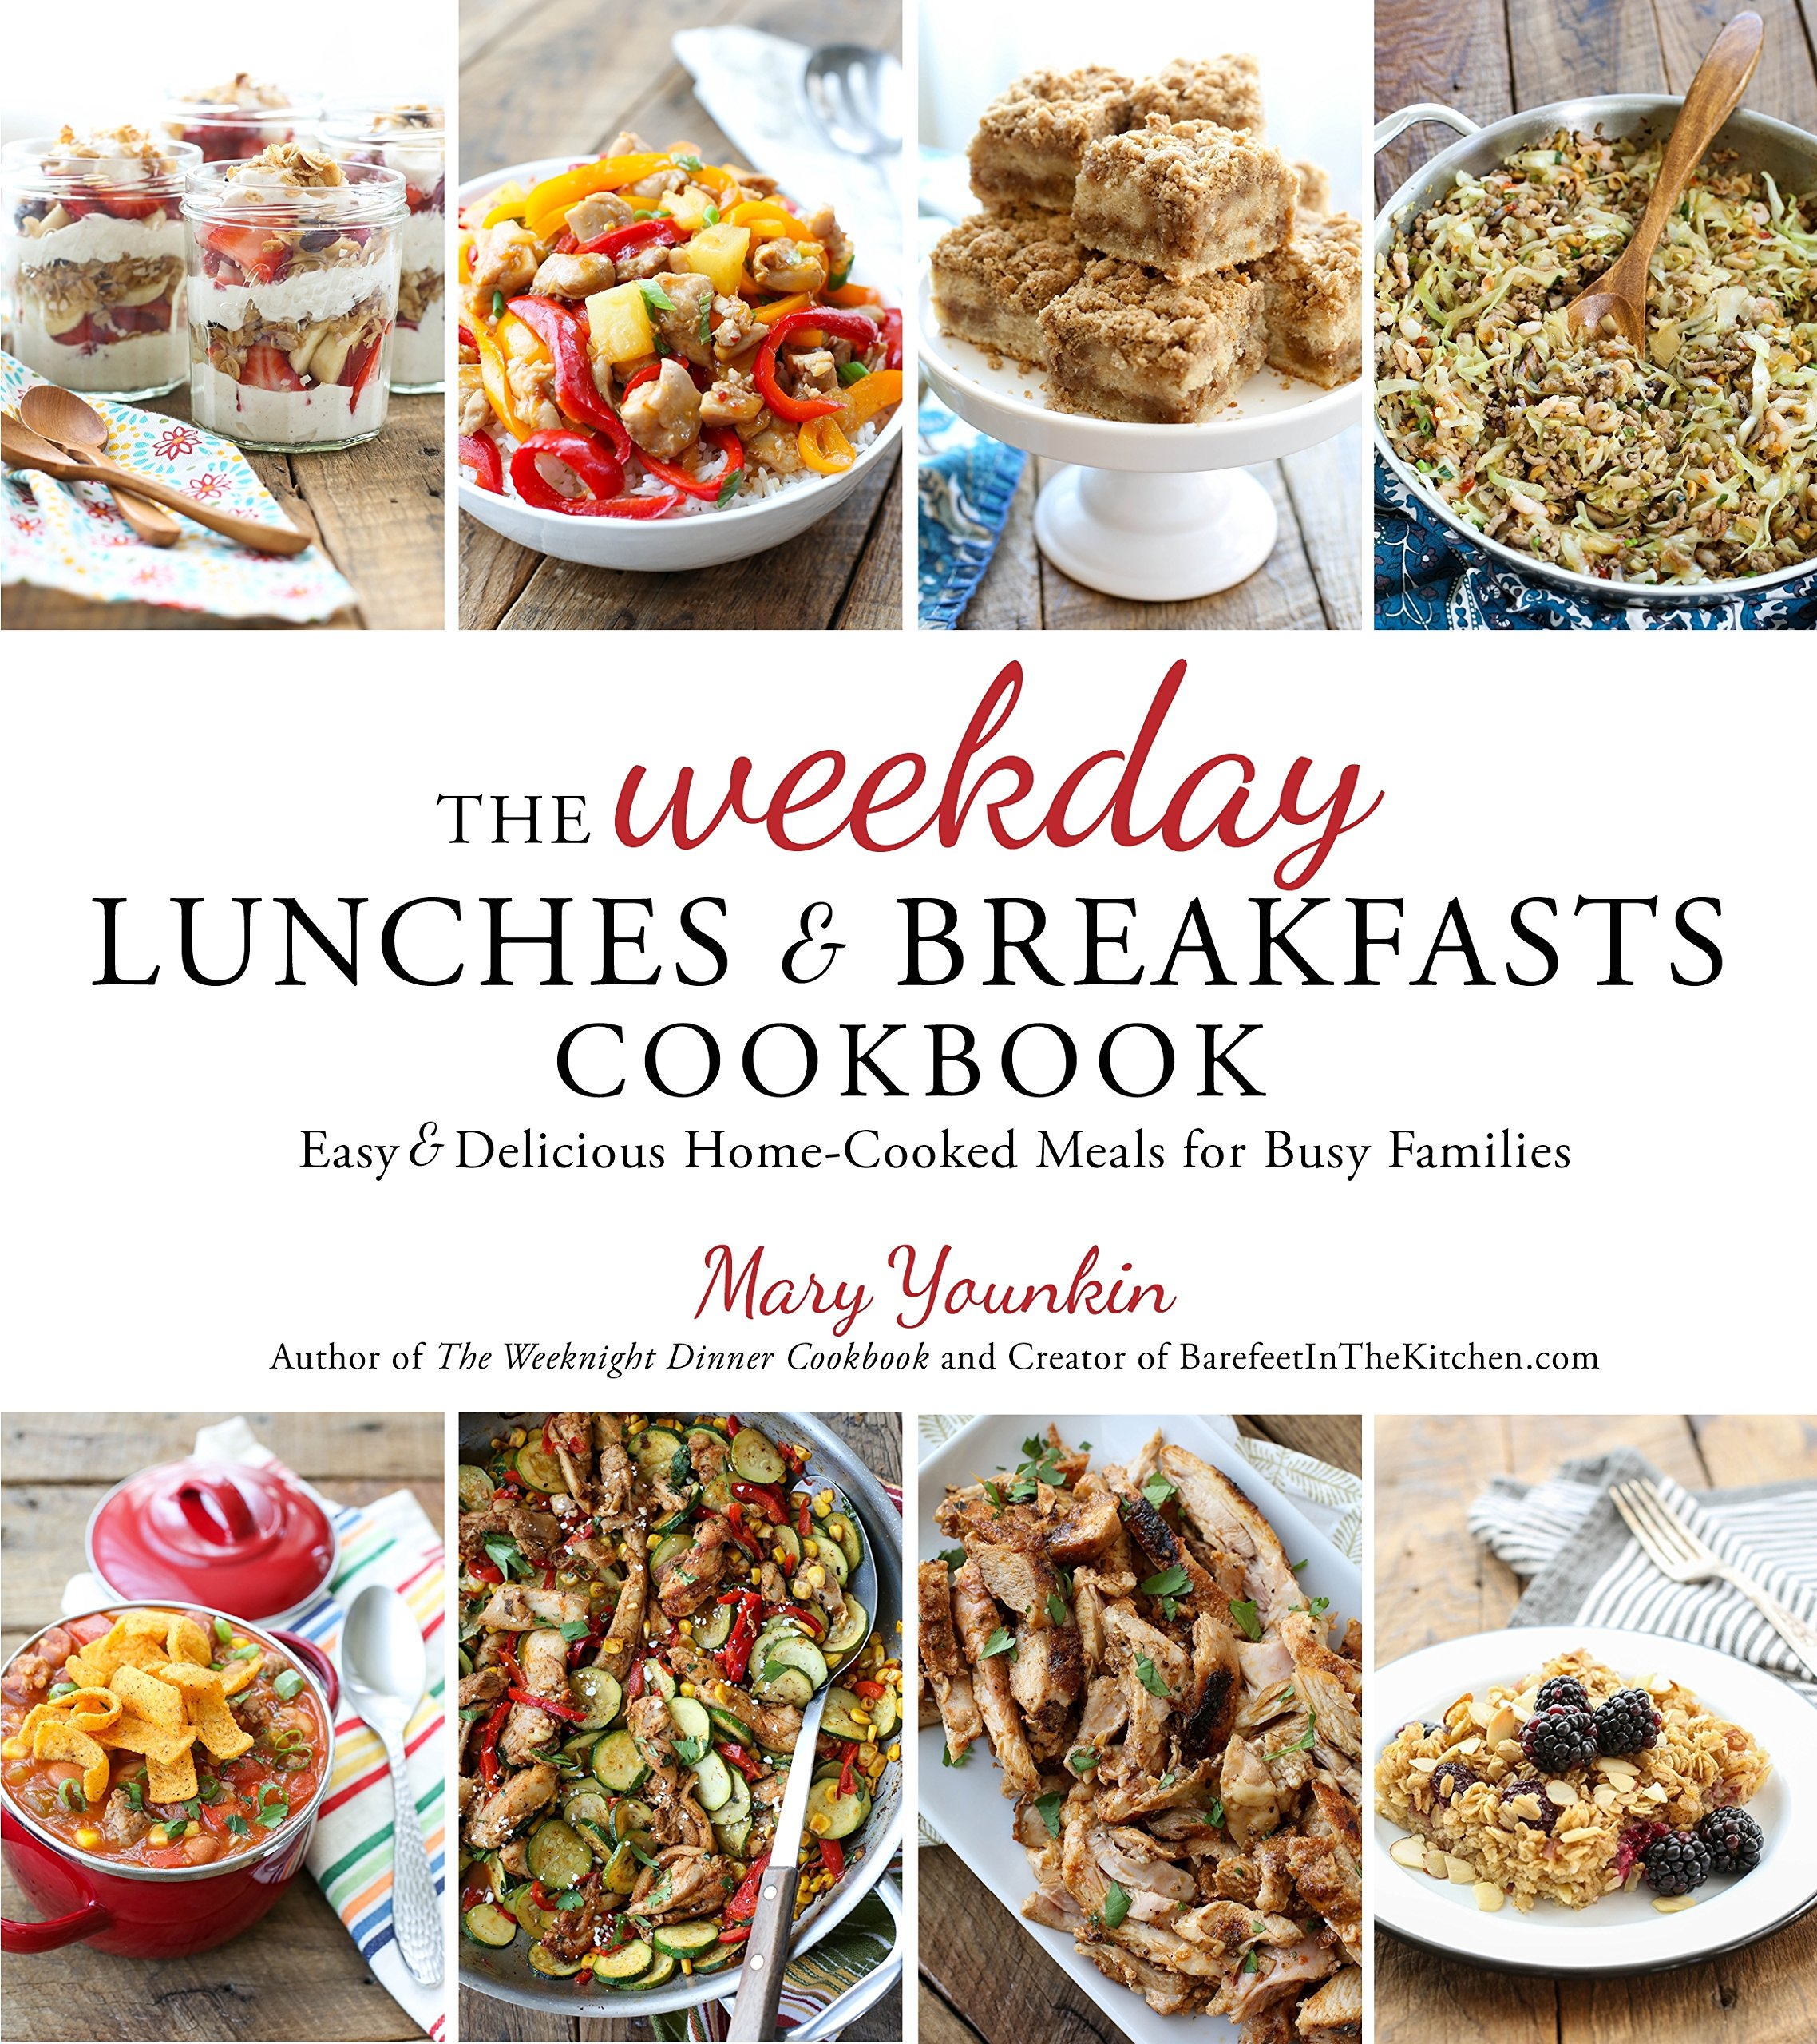 The Weekday Lunches & Breakfasts Cookbook: Easy & Delicious Home ...